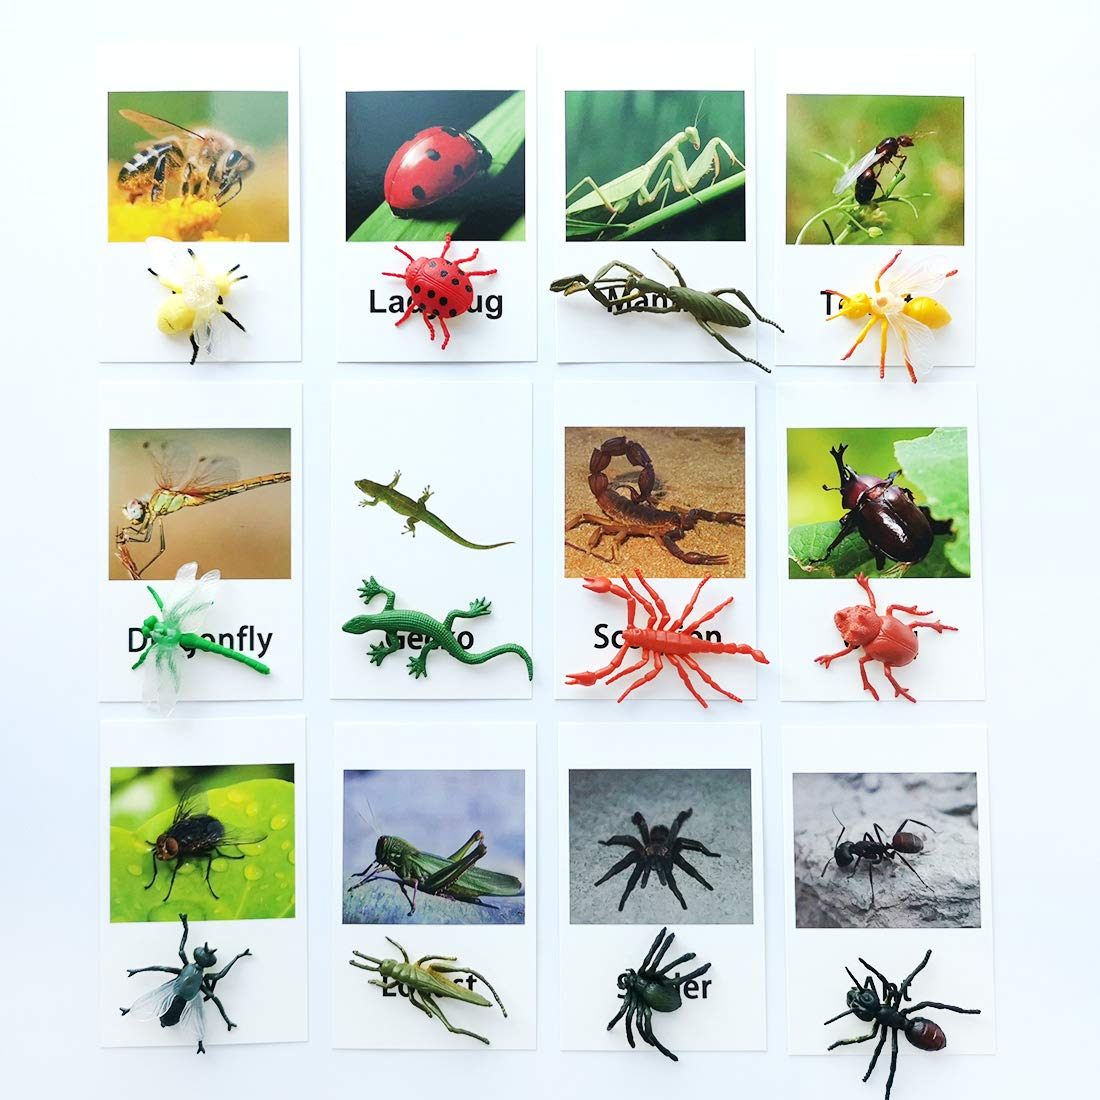 Montessori Animal Match - Insect Animal Figurines with Matching Cards Language Montessori Materials Preschool Learning Toy NEWT008